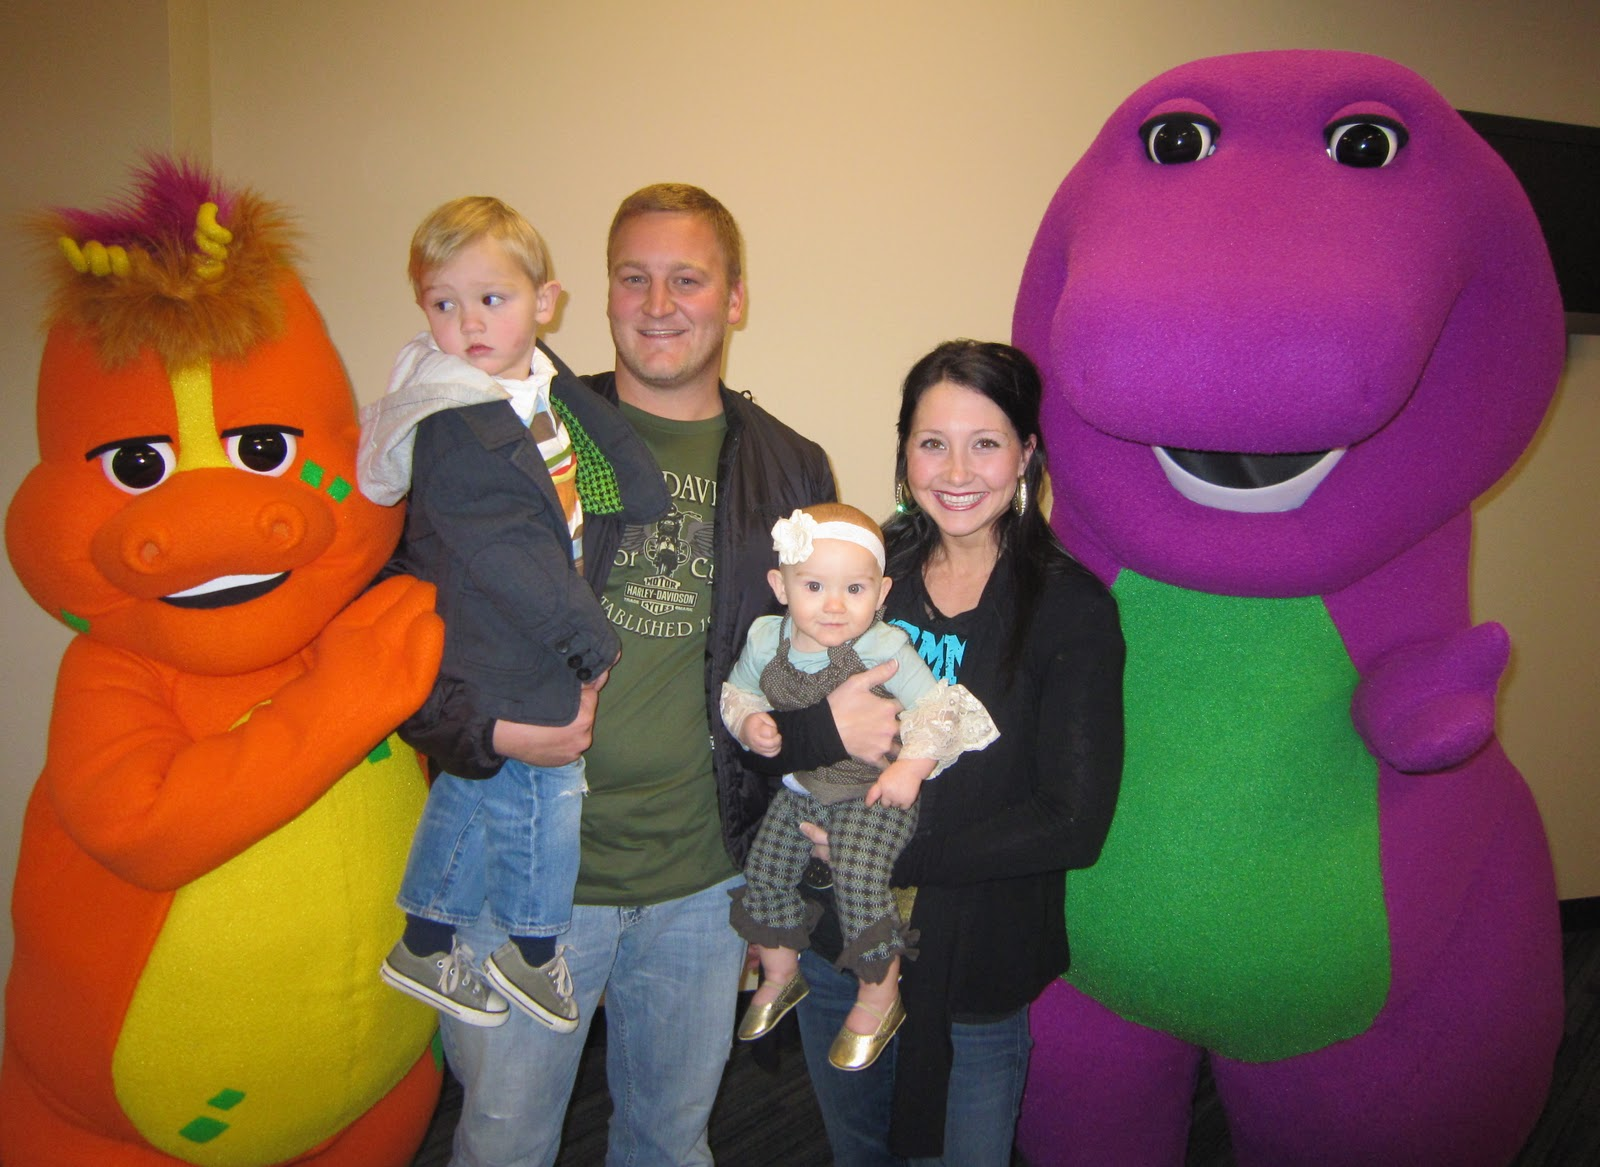 The Rollins Ruckus A Night Out With A BIG Purple Dinosaur - Barney live in concert birthday